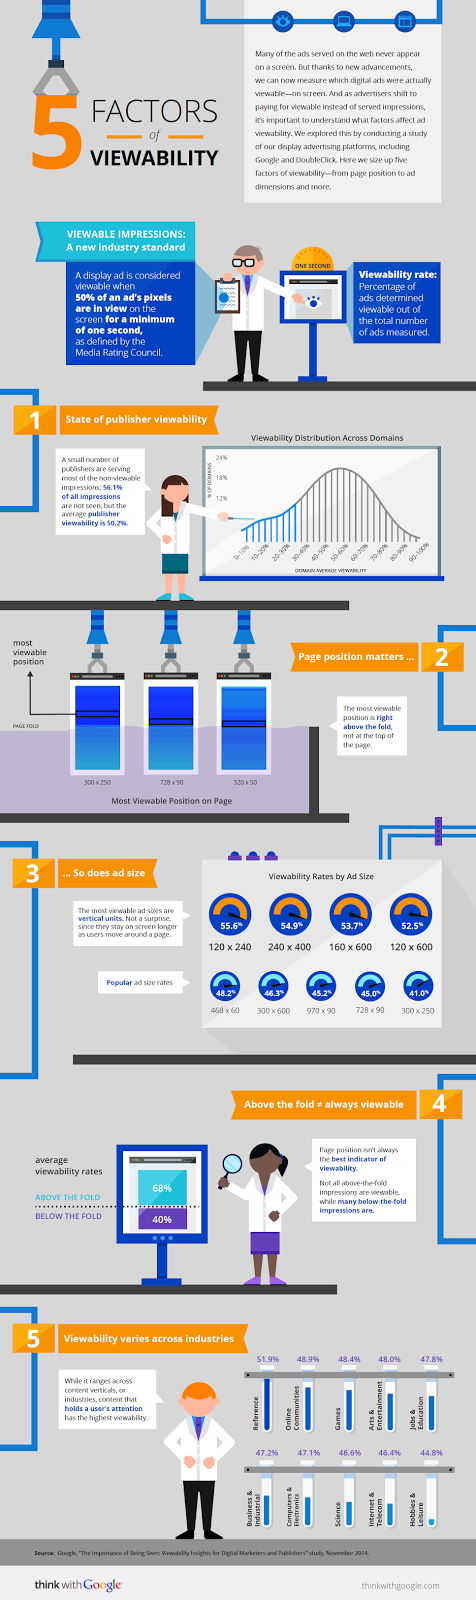 Google Ads Viewability Study infographic